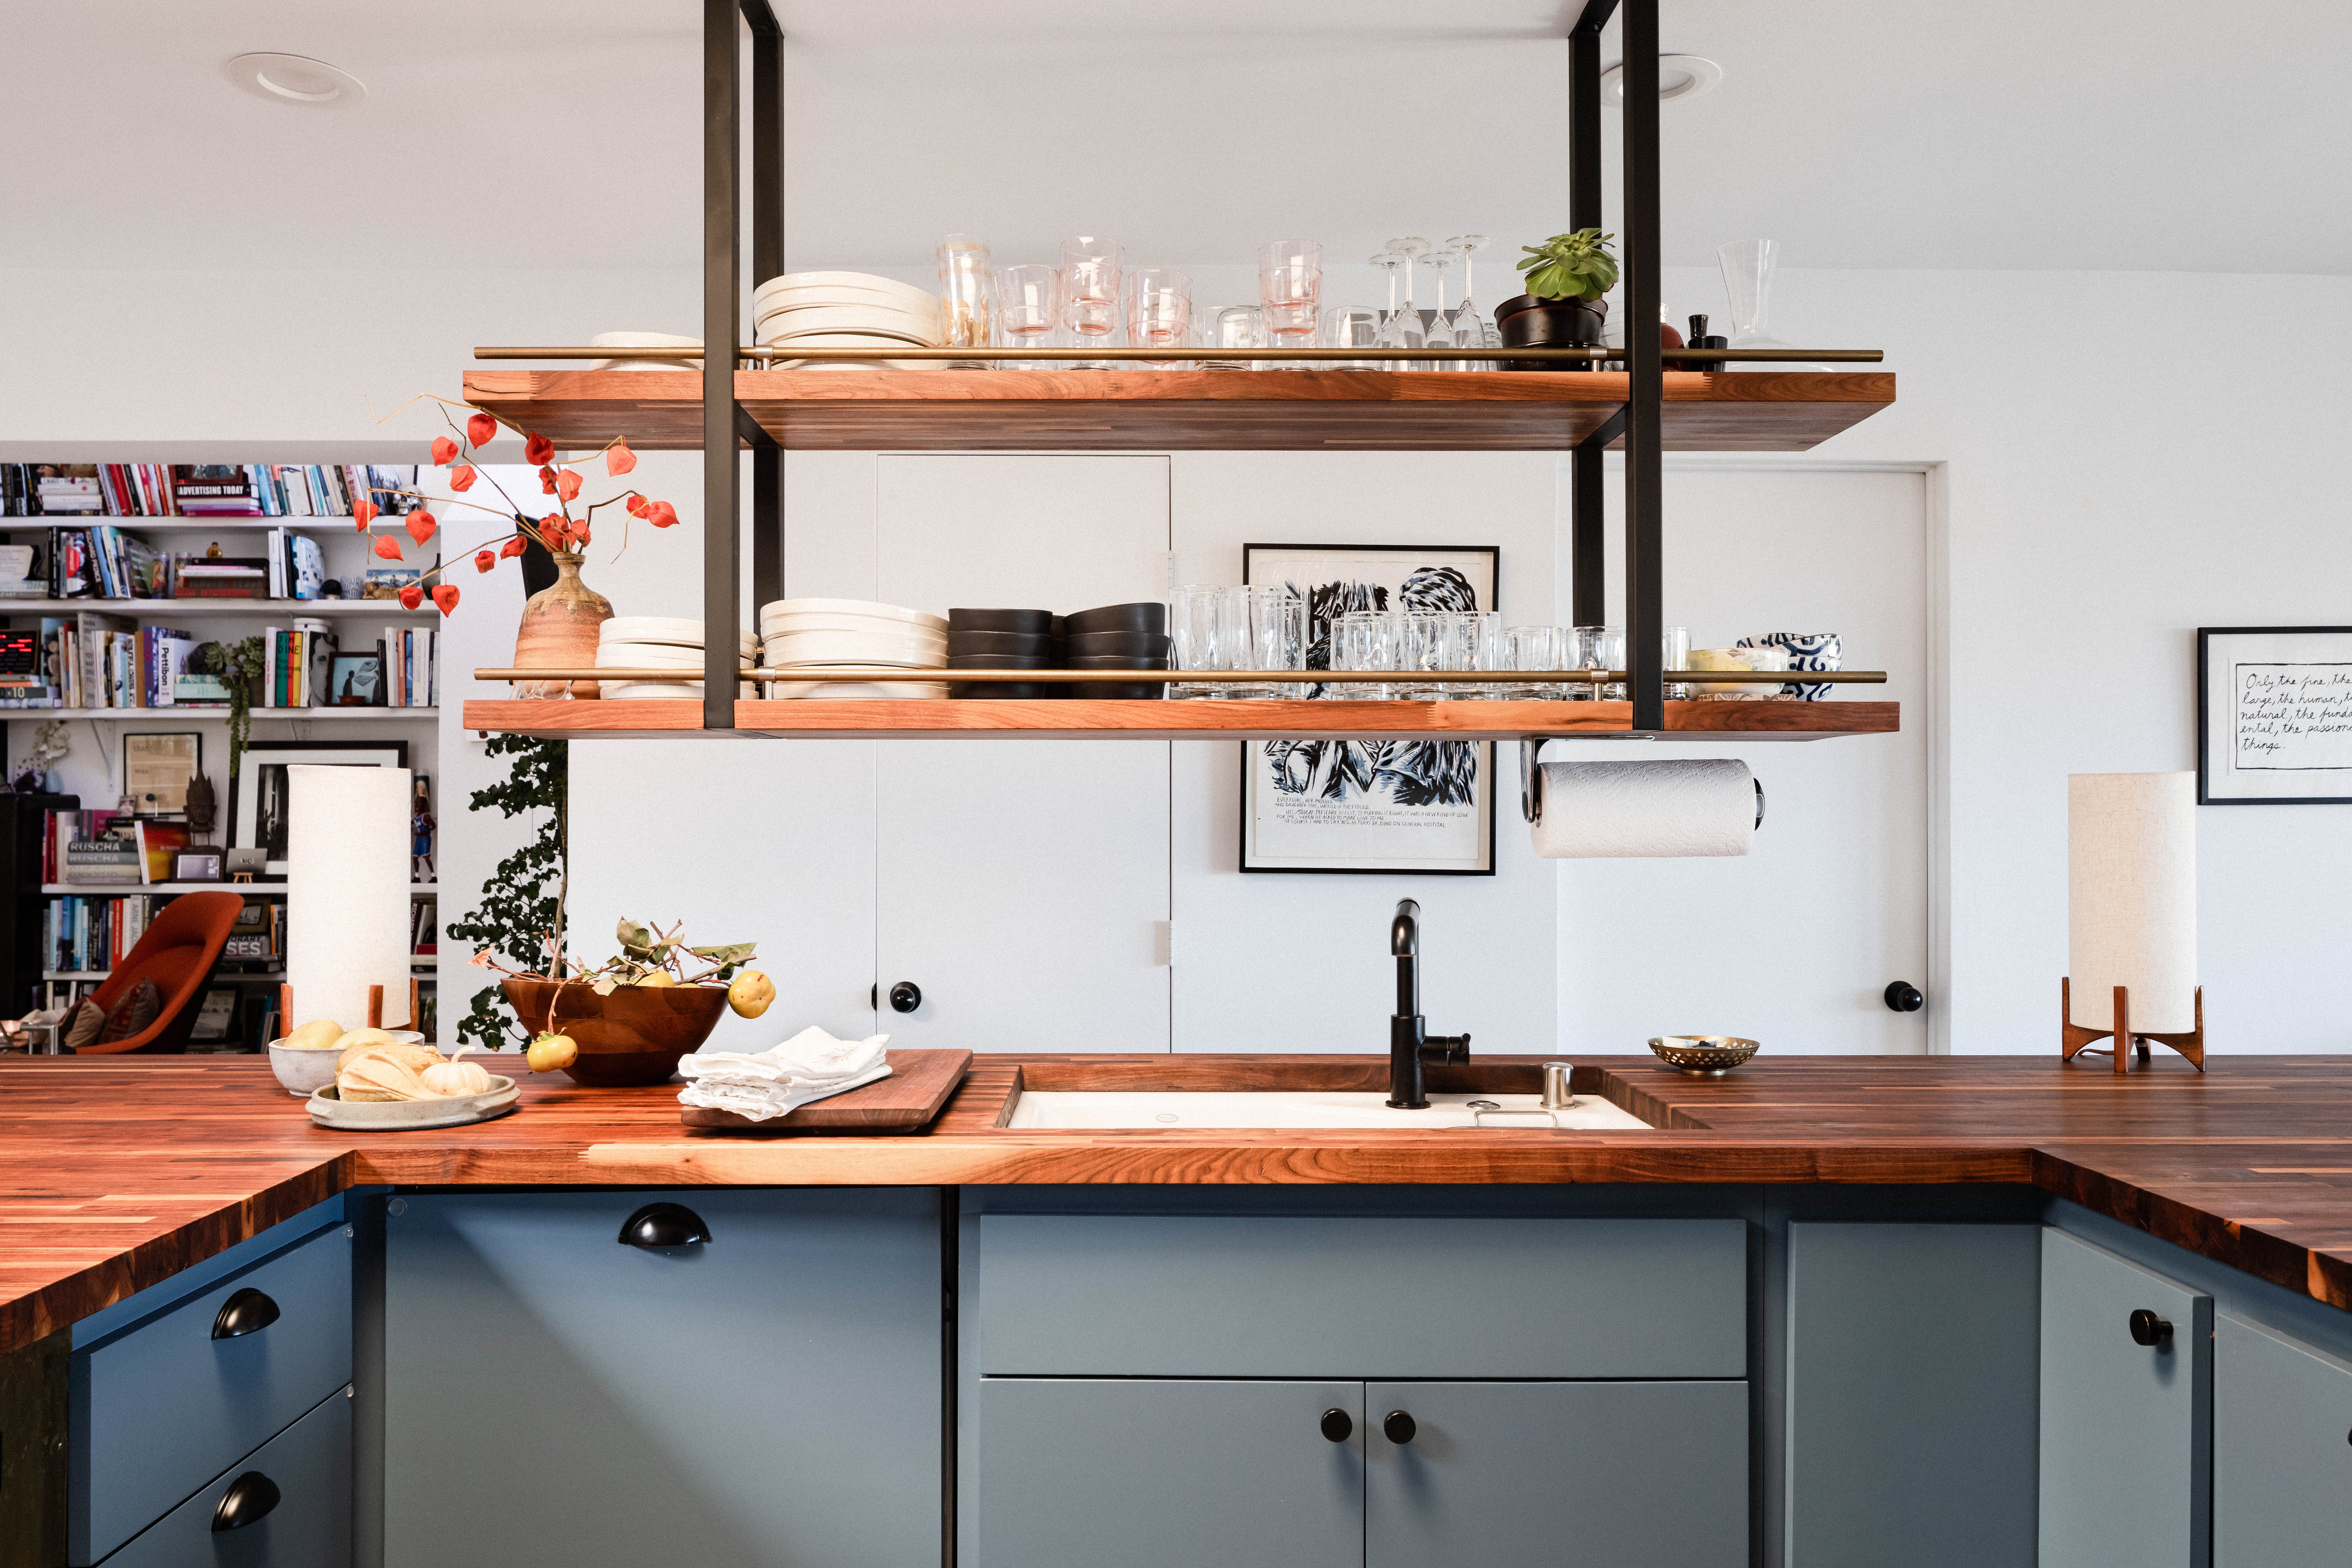 How To Install An Undermount Sink Hunker